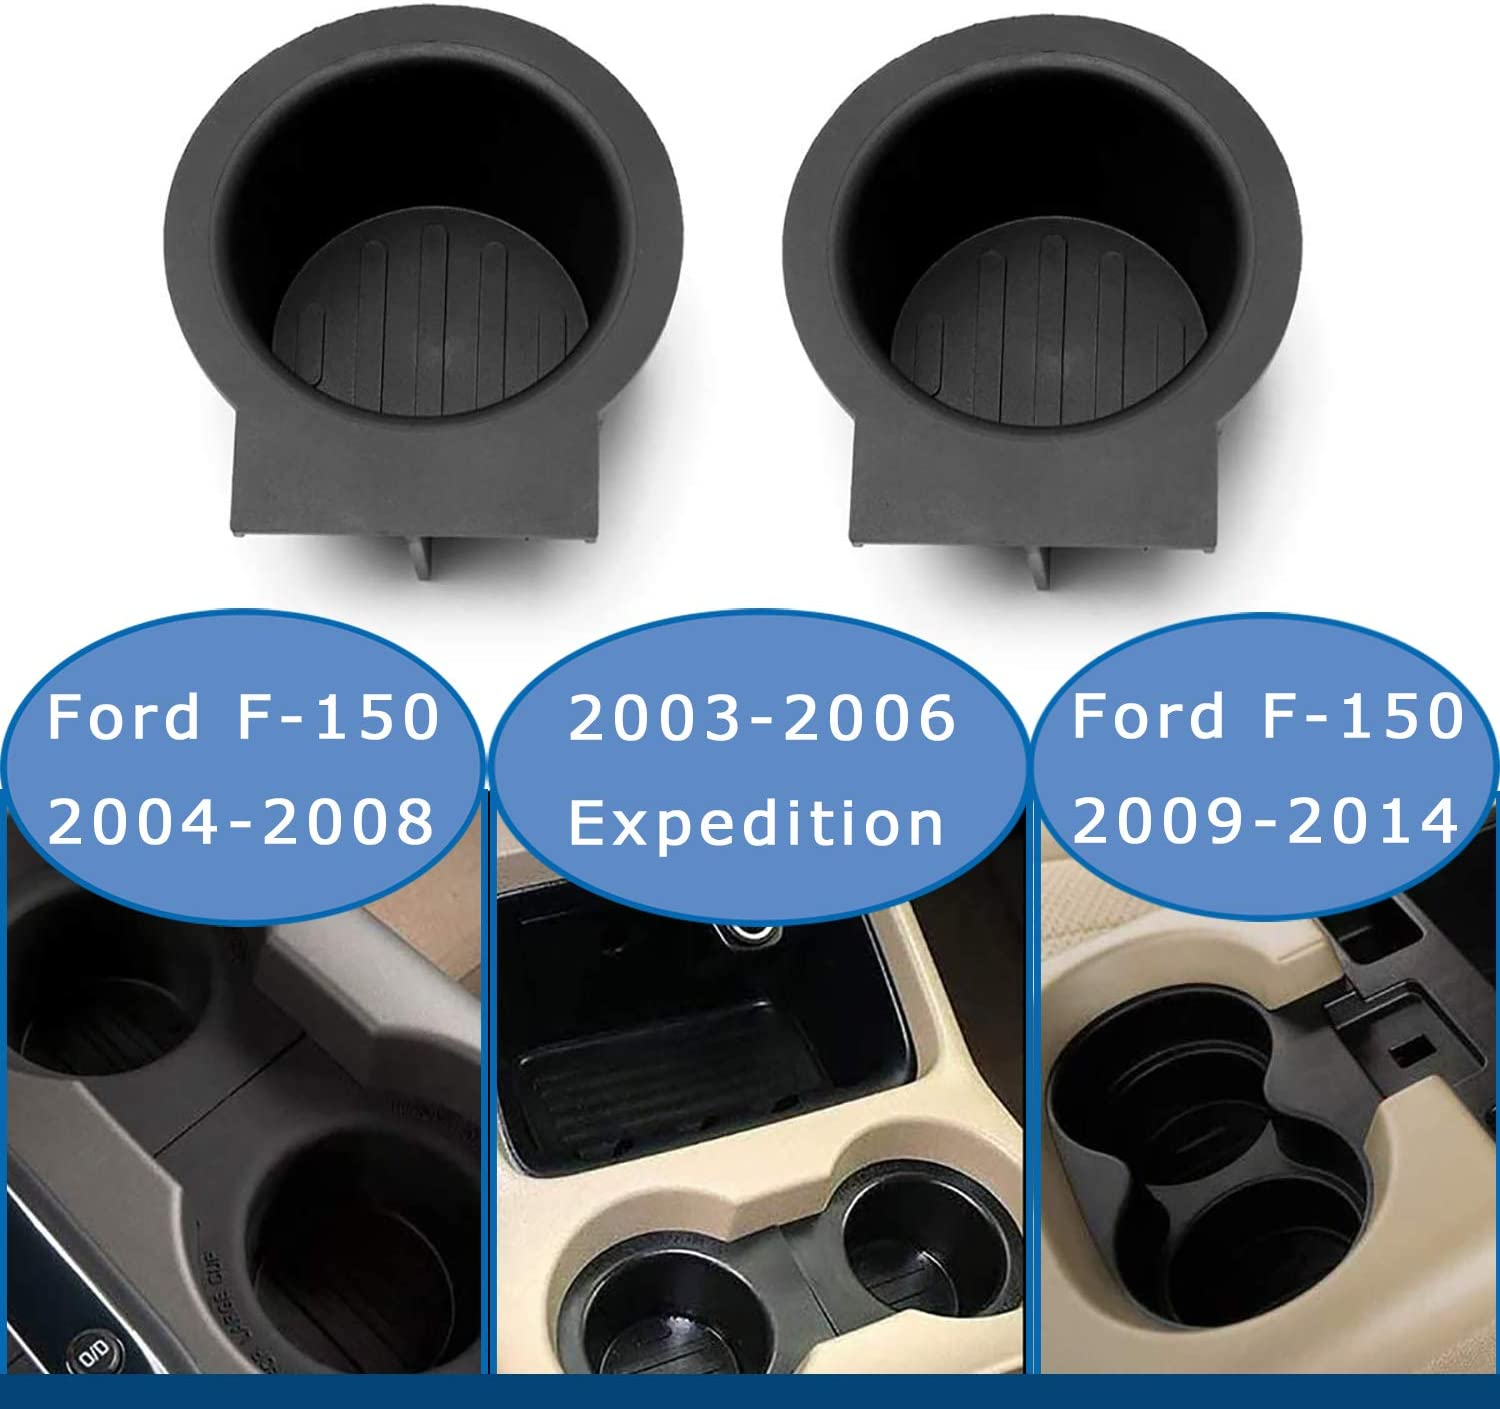 For Ford F-150 2004-2014 Dorman 41008 Front Cup Holder Insert